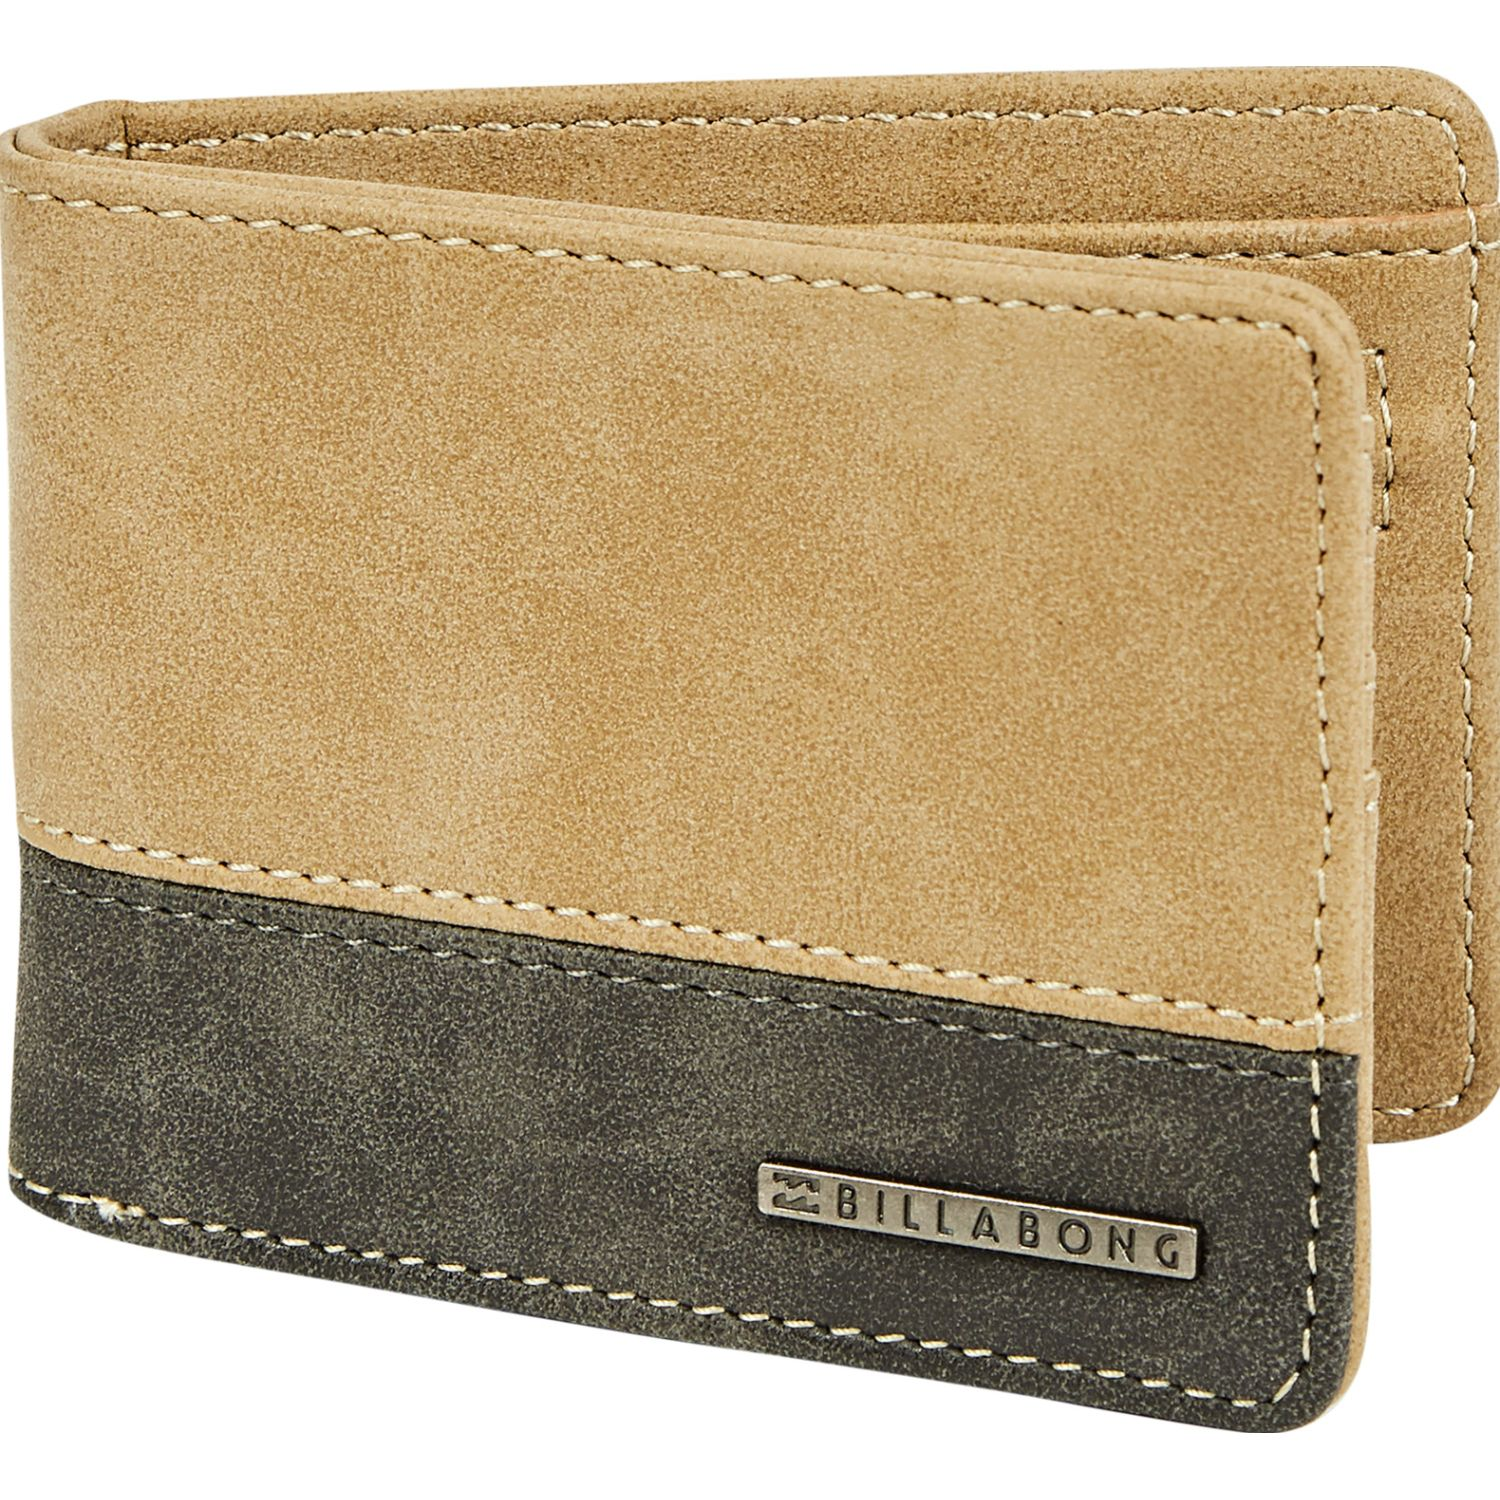 Billabong dimension wallet Camel Billeteras